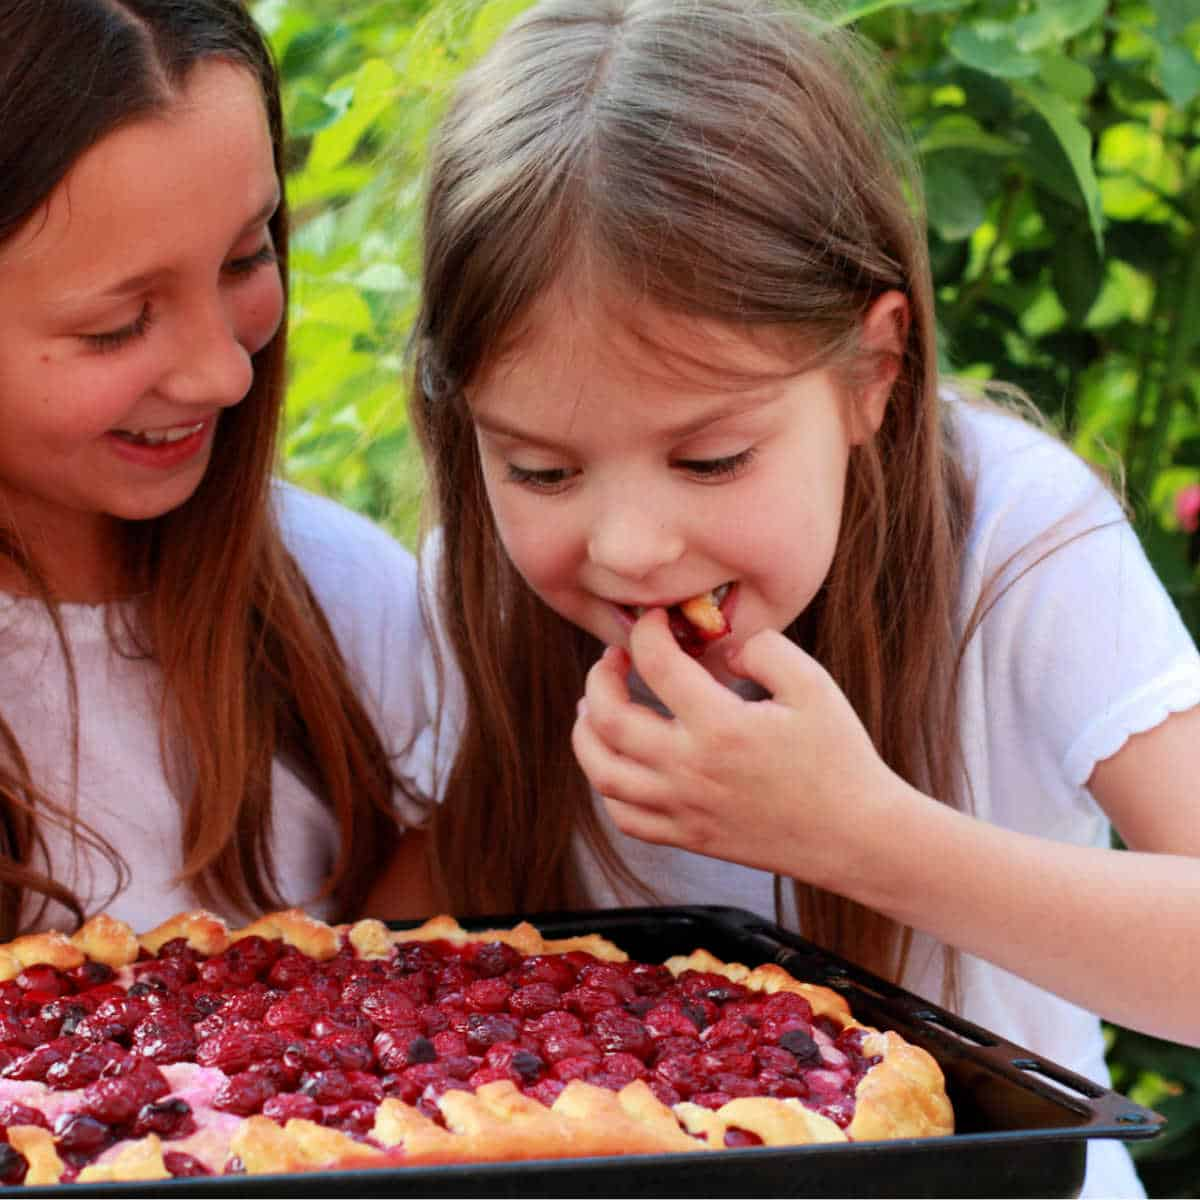 two little girls eating cherry pie in a garden